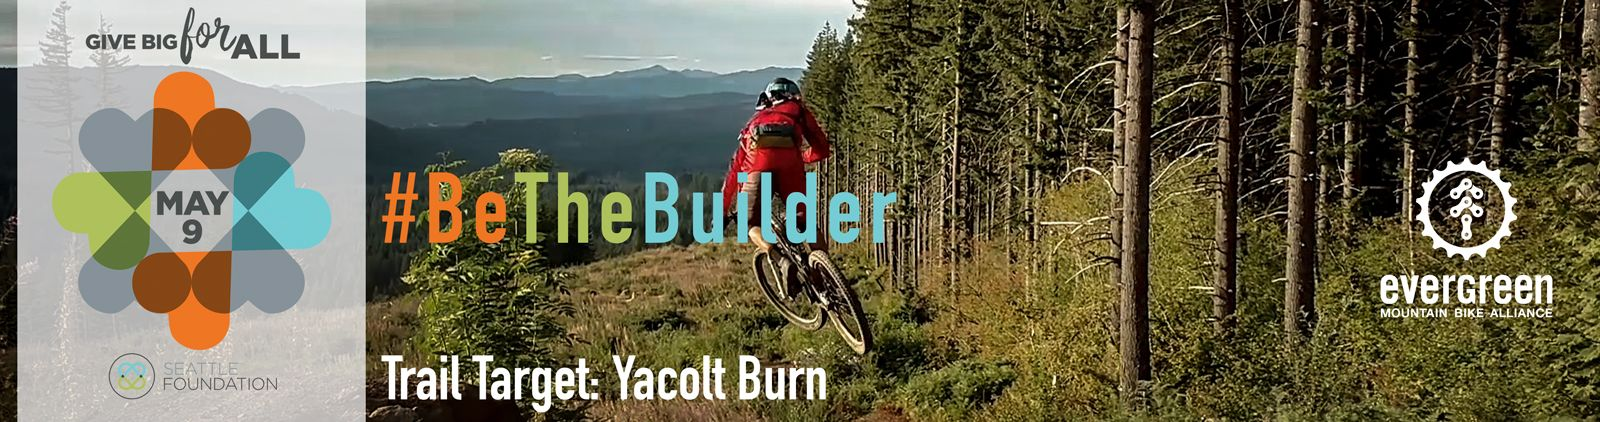 Evergreen MTB Blog Article Image